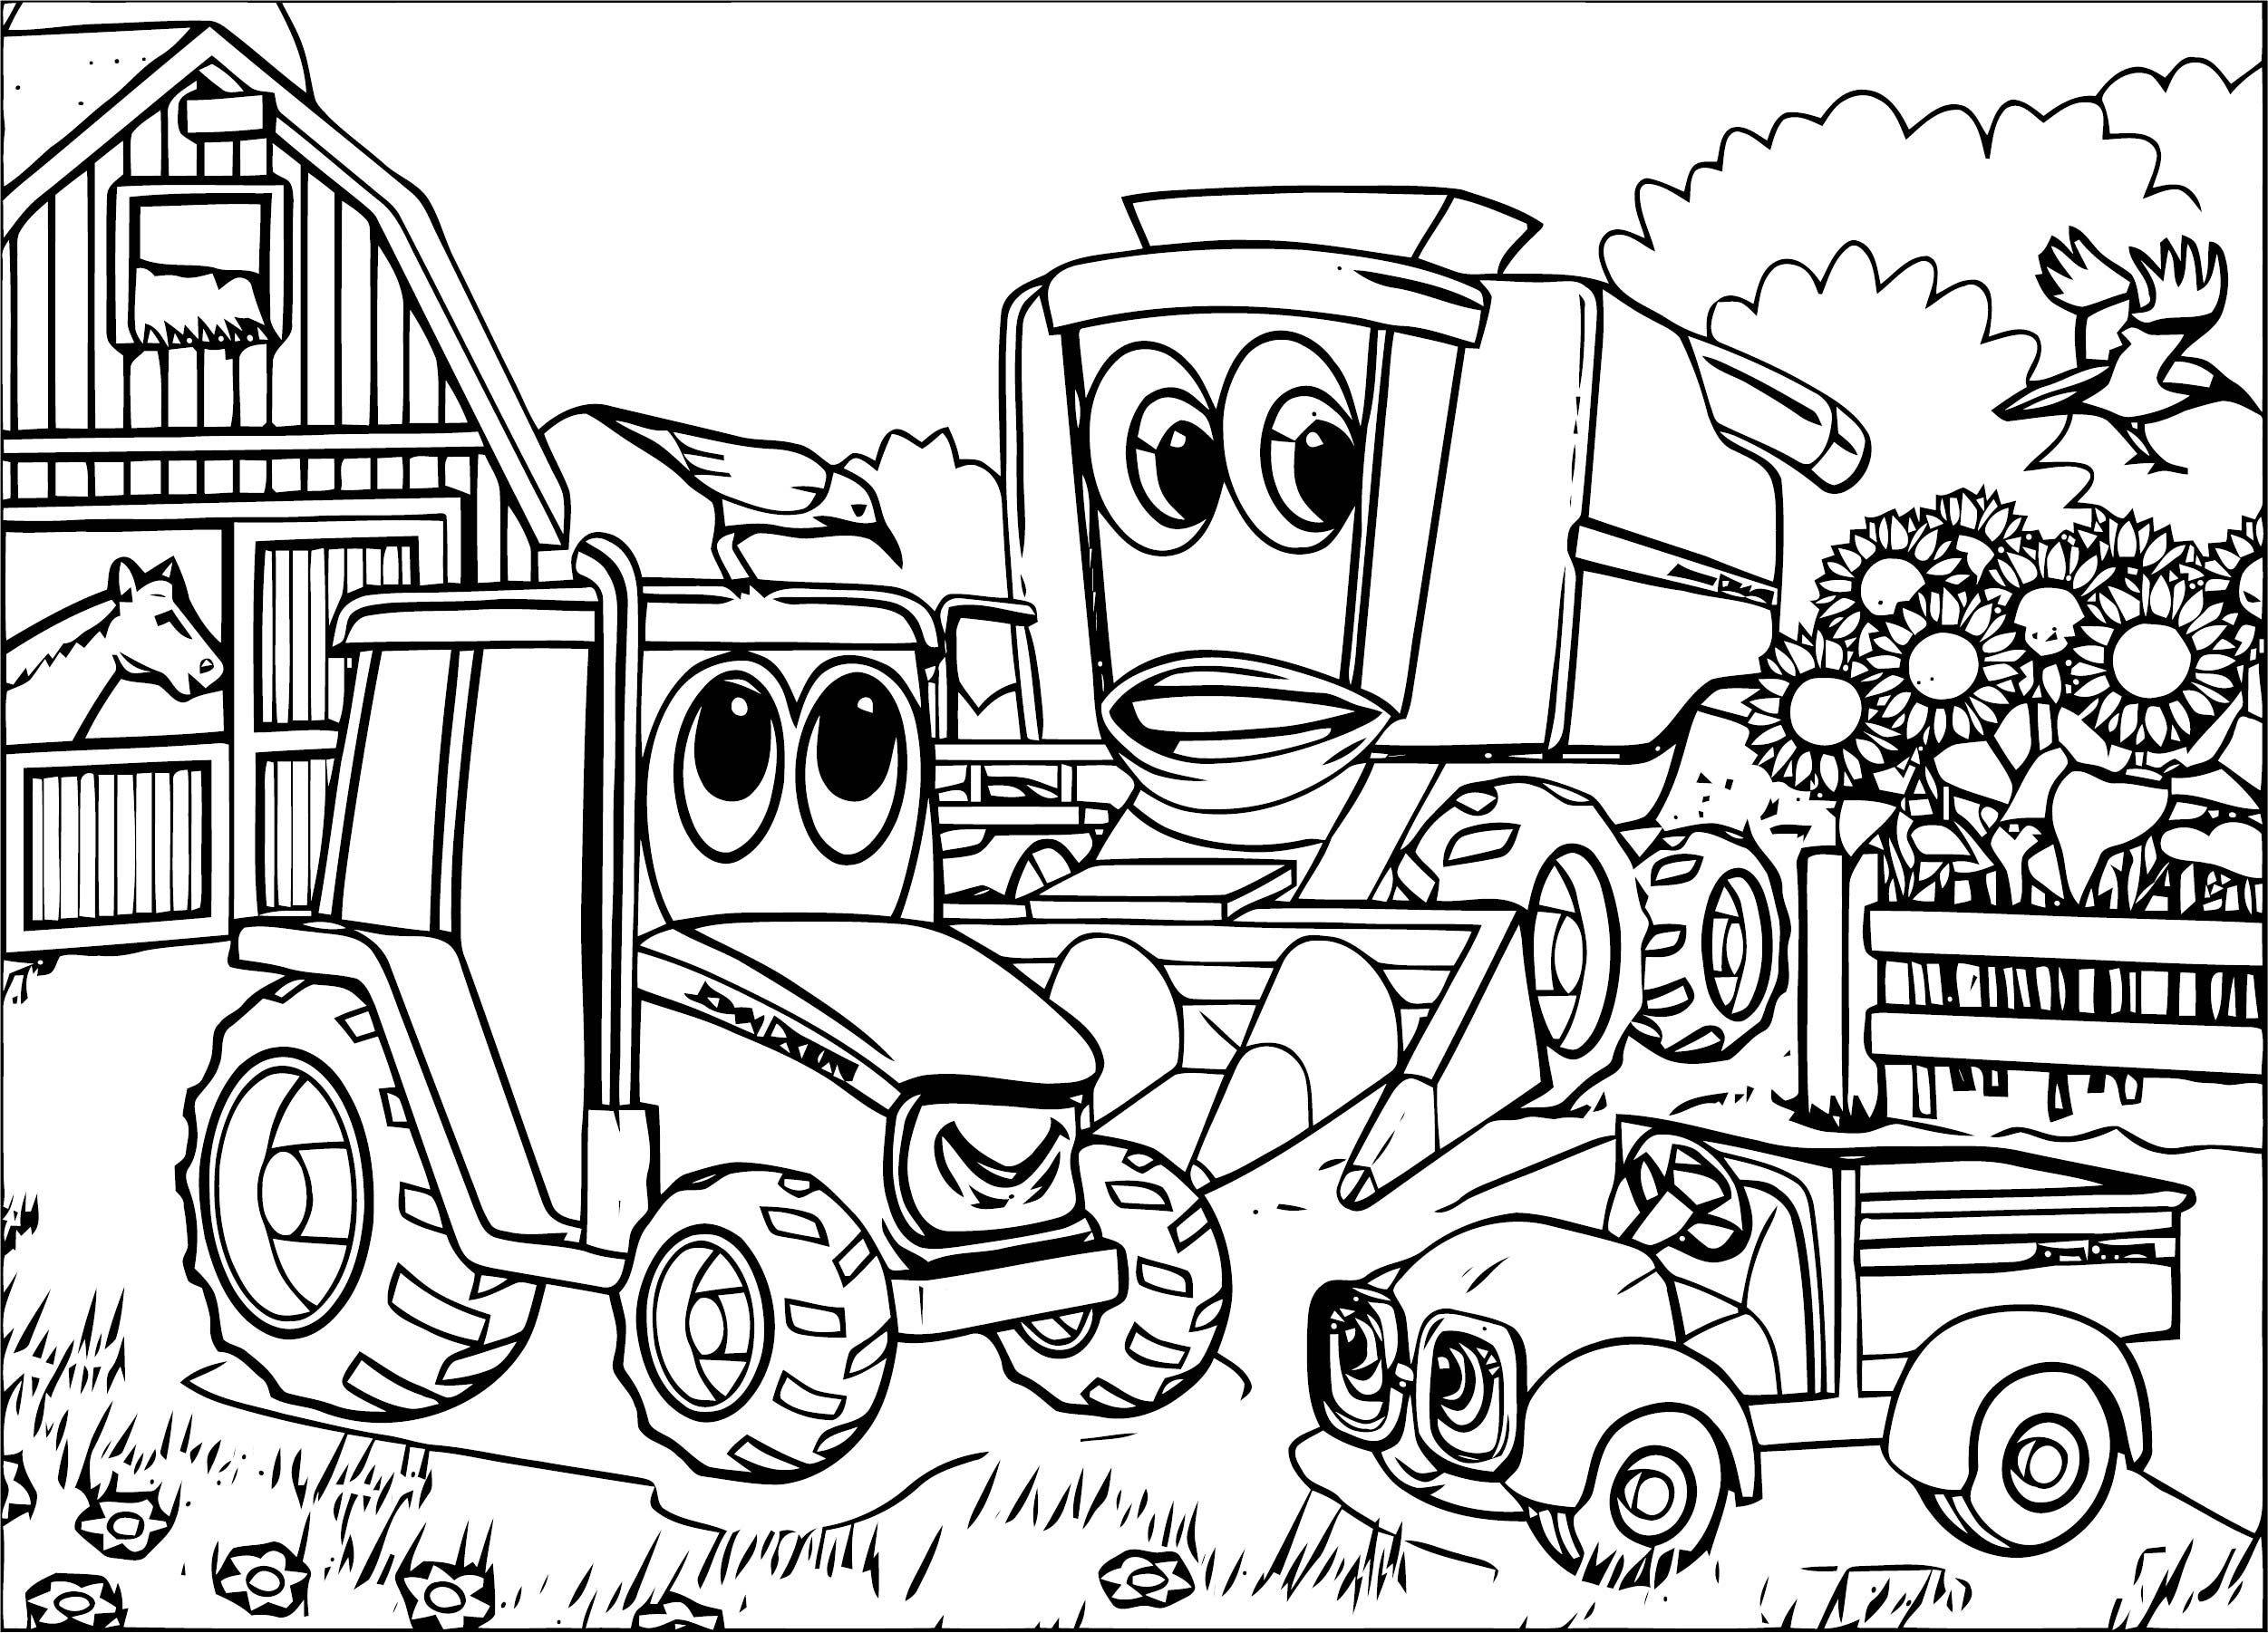 John johnny deere tractor farm coloring page for Johnny tractor coloring pages